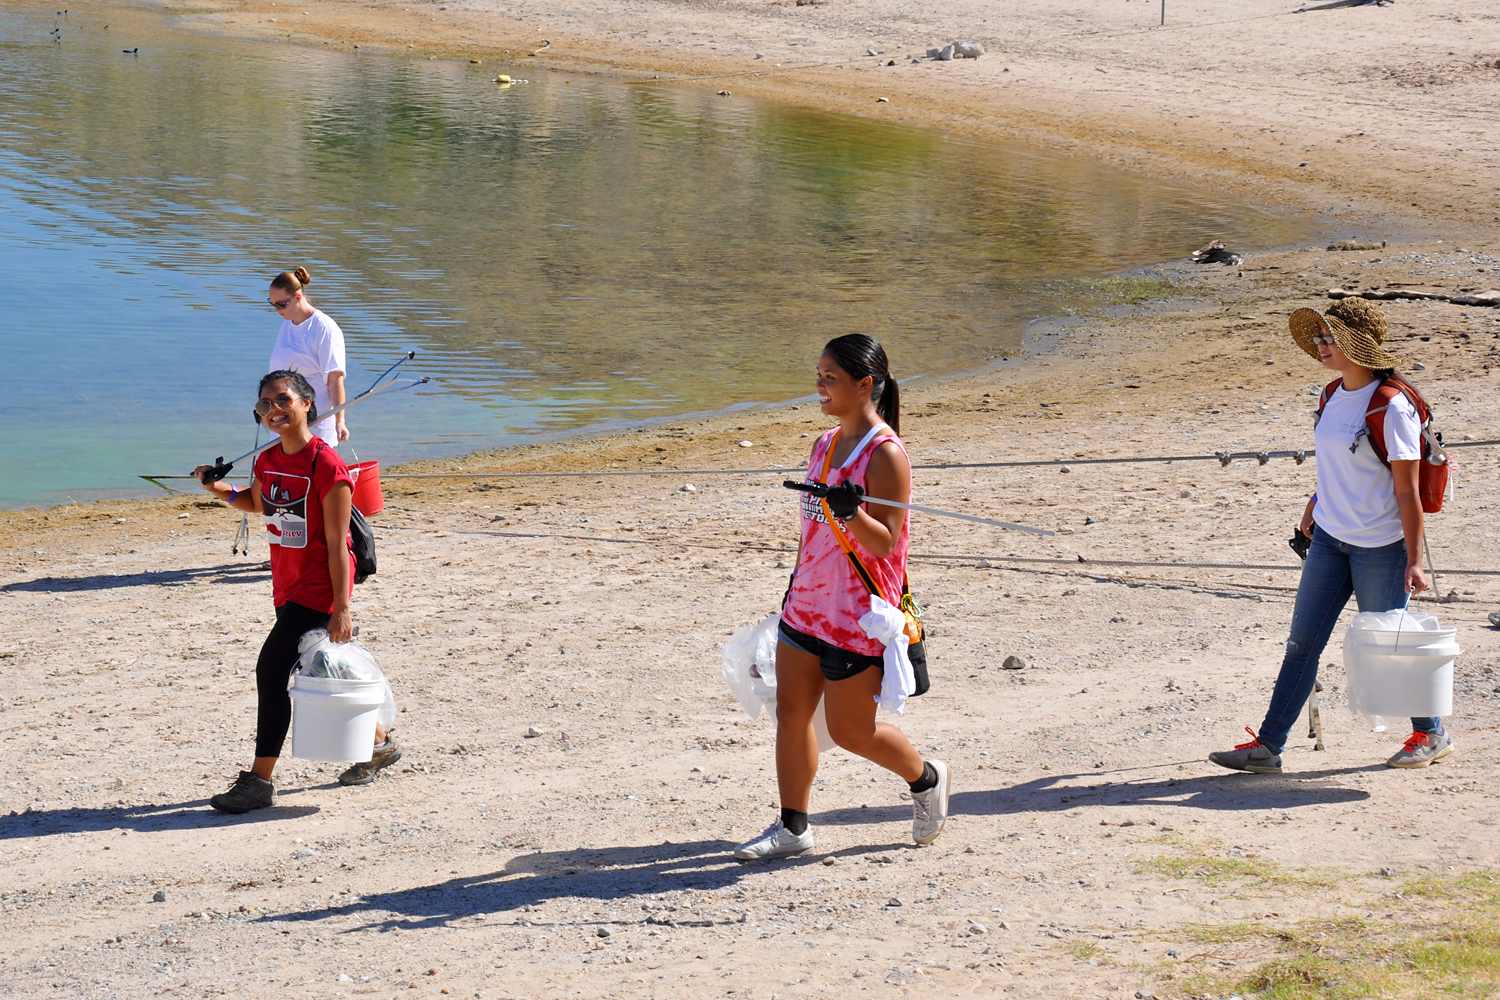 More than 150 volunteers and certified divers picked up litter around the beaches and under the marina at Cottonwood Cove to cleanup the park after a busy summer Oct. 11, 2014.